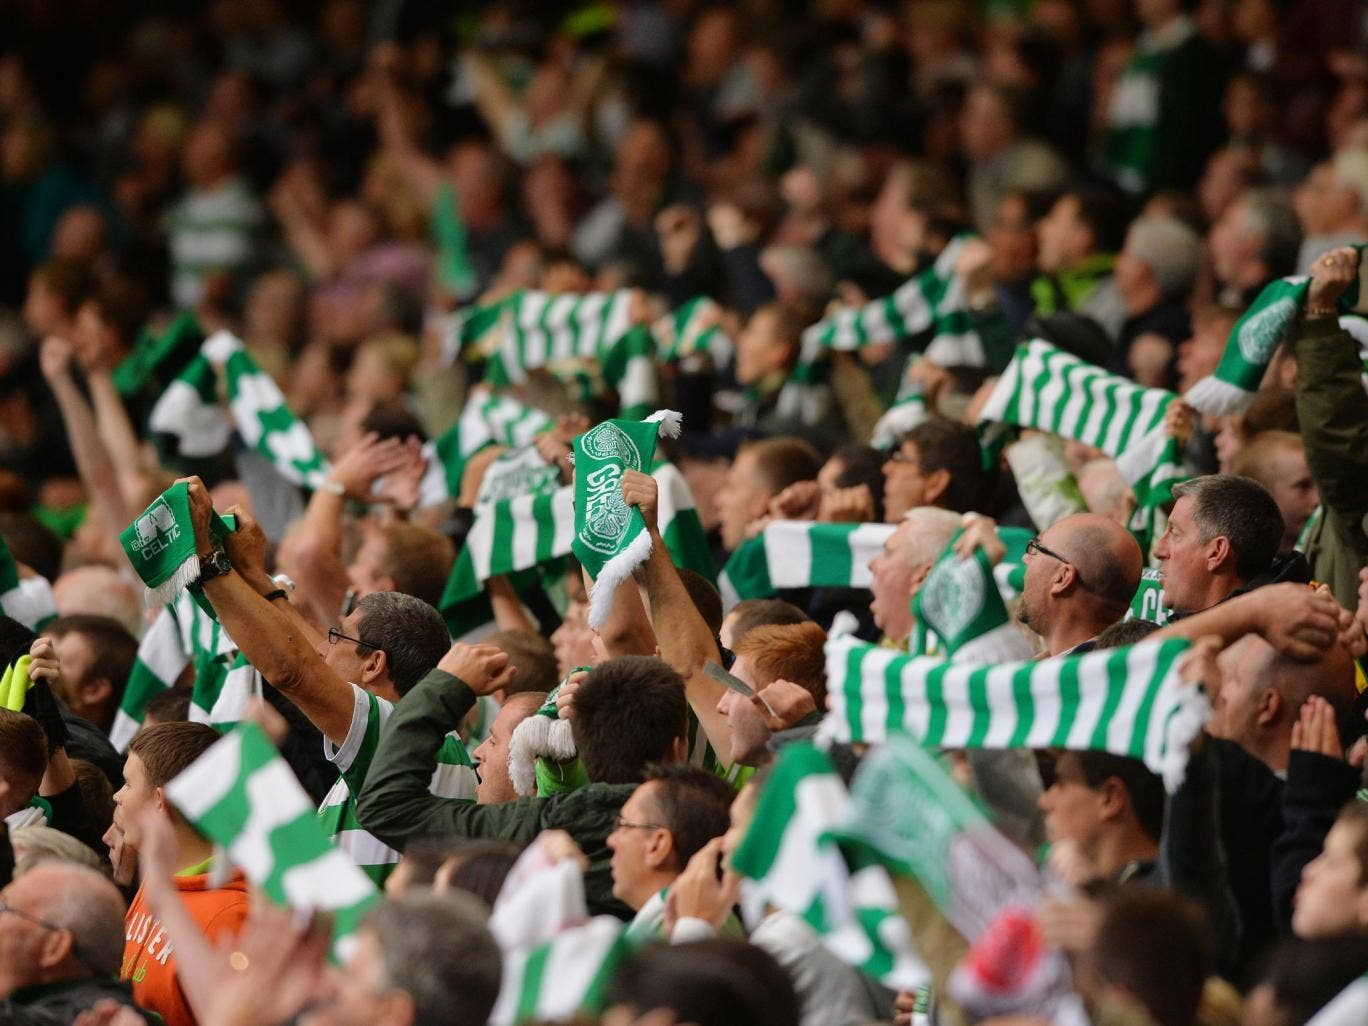 The song entered the charts after a campaign by Celtic fans